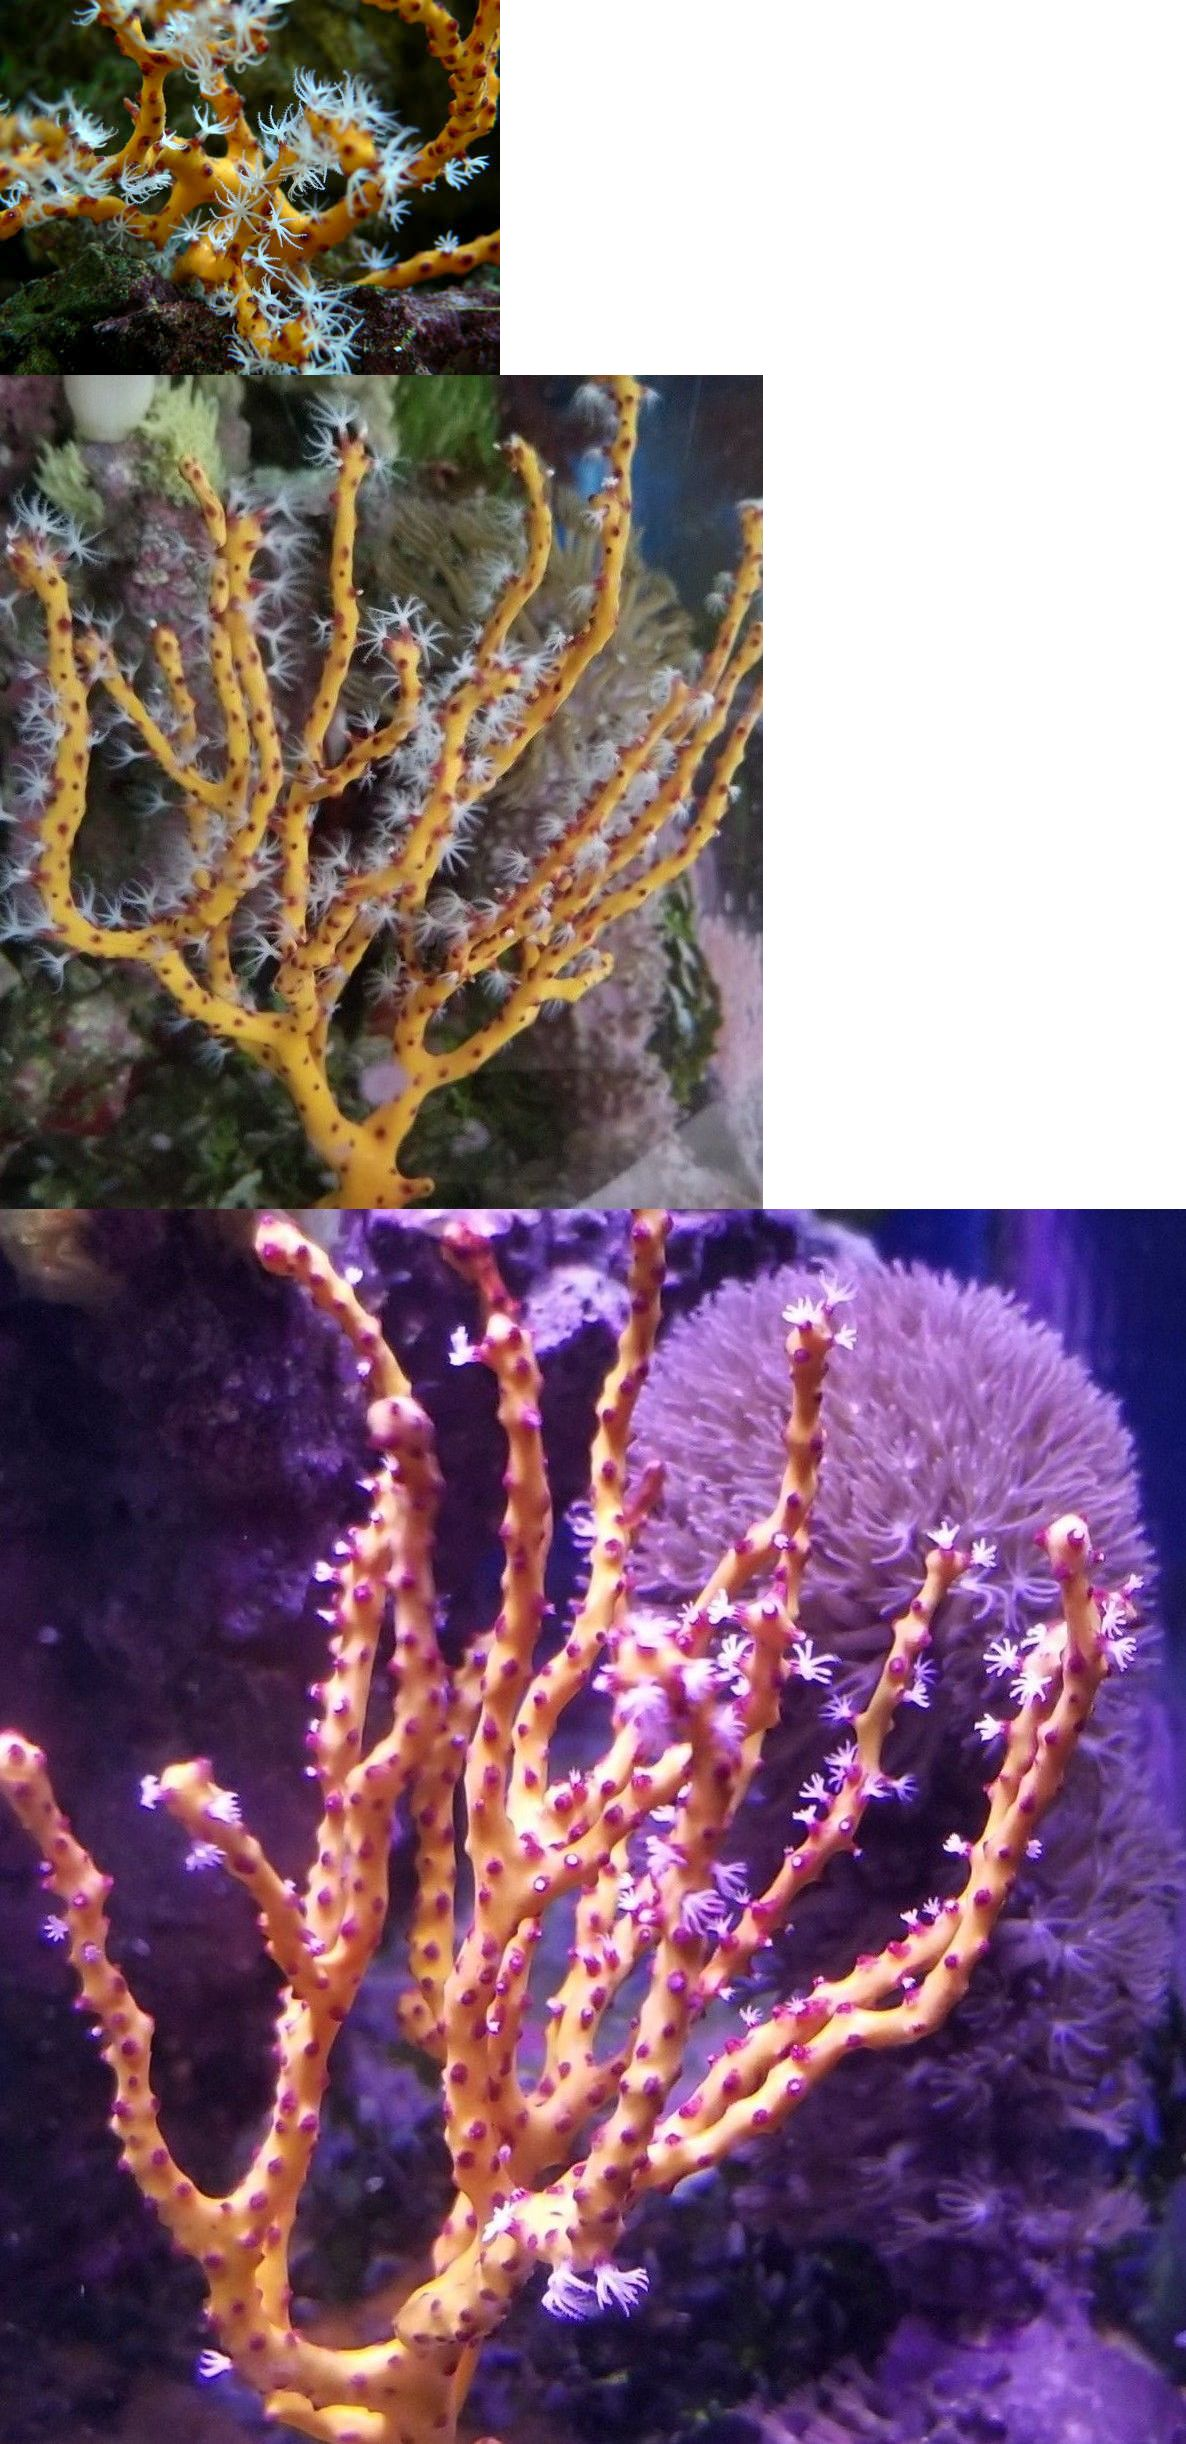 Pin On Coral And Live Rock 177797